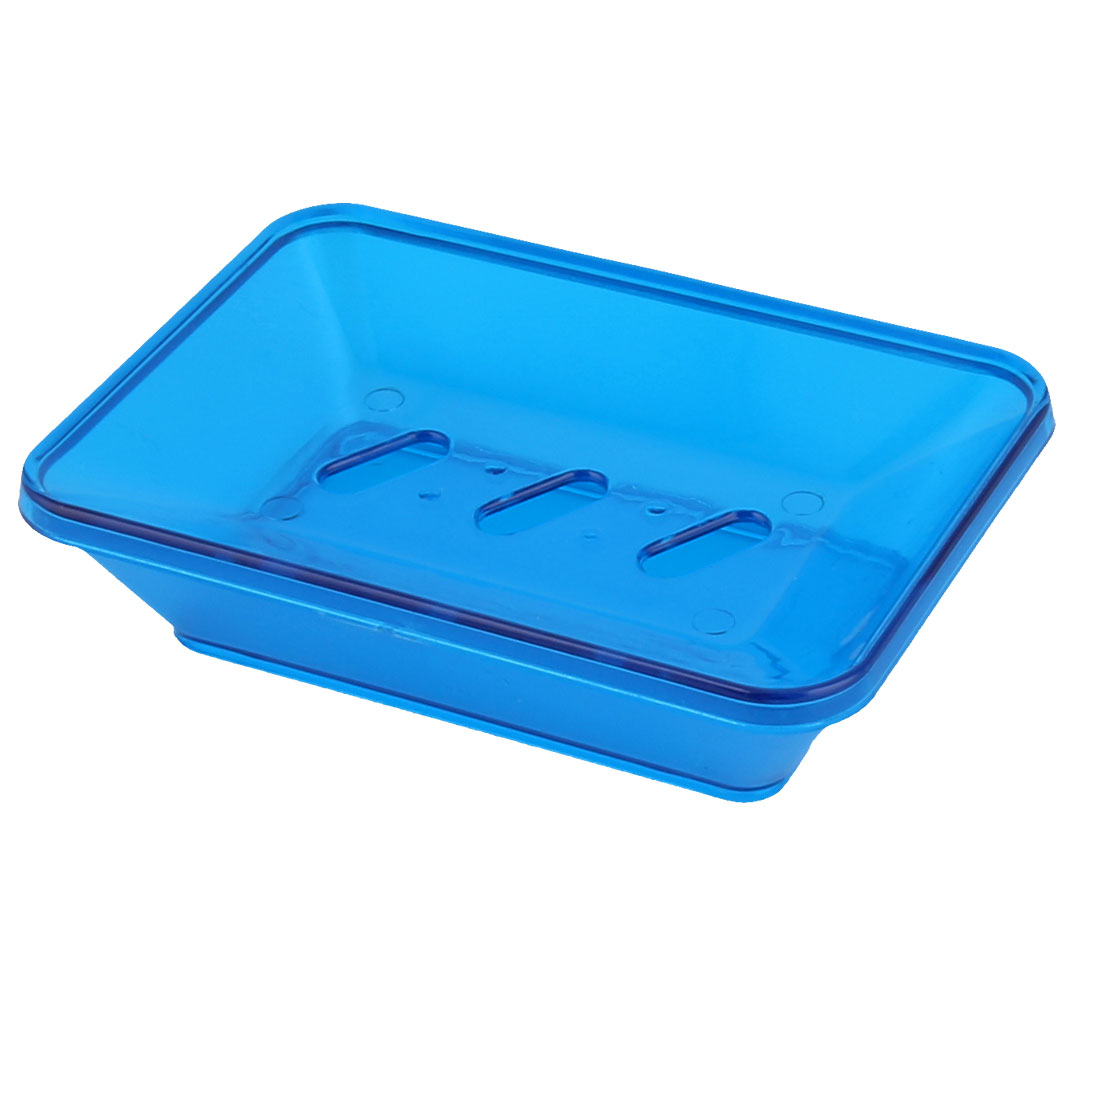 Household Bahtroom Trapezoid Plastic 2 Layers Soap Box Holder Dish Tray Blue